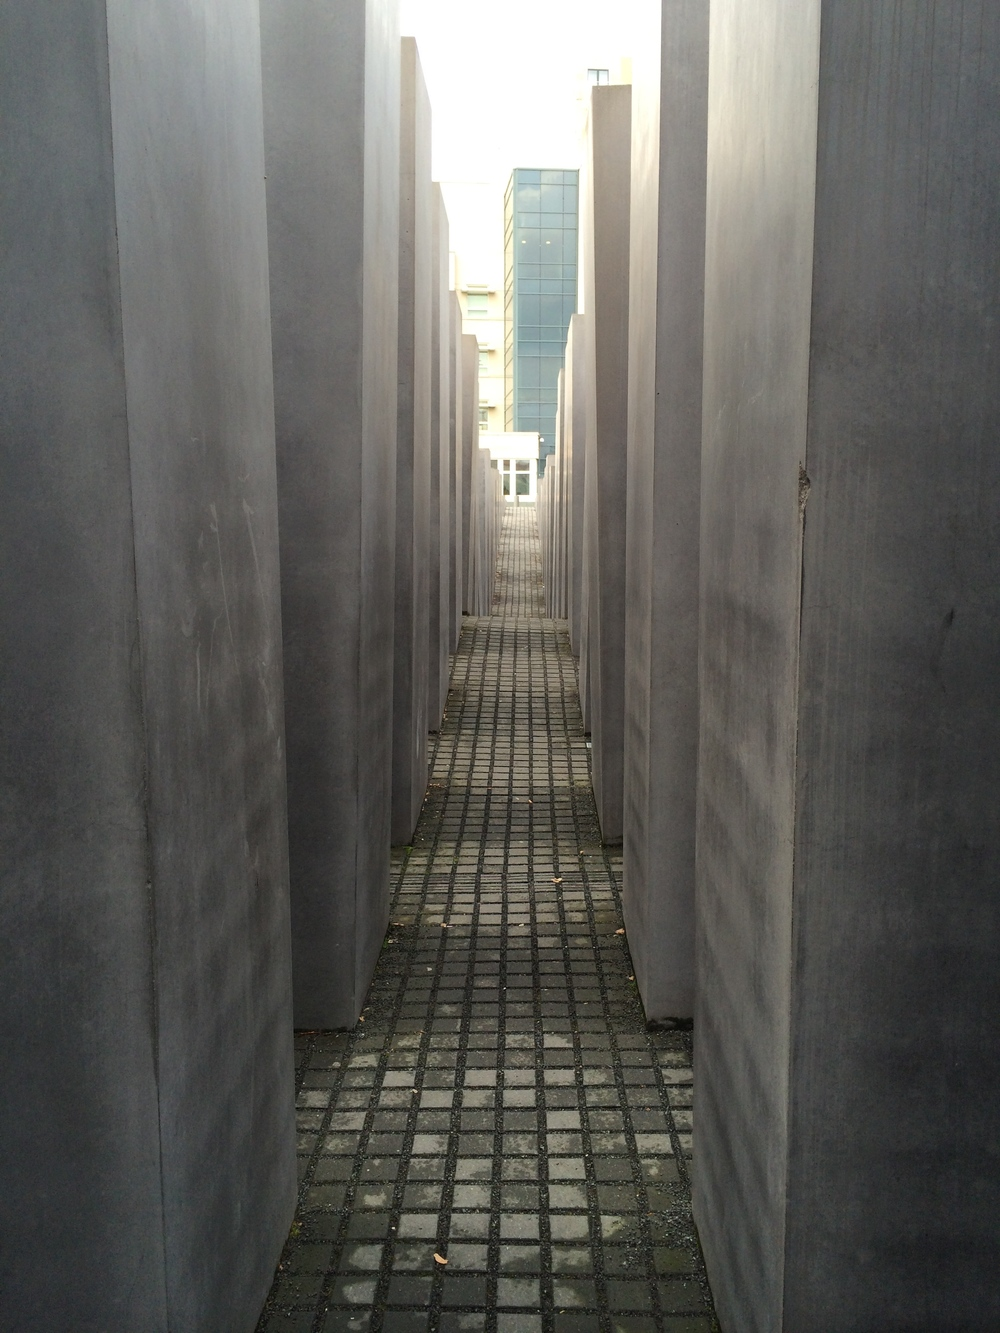 Visiting the Holocaust memorial in Berlin